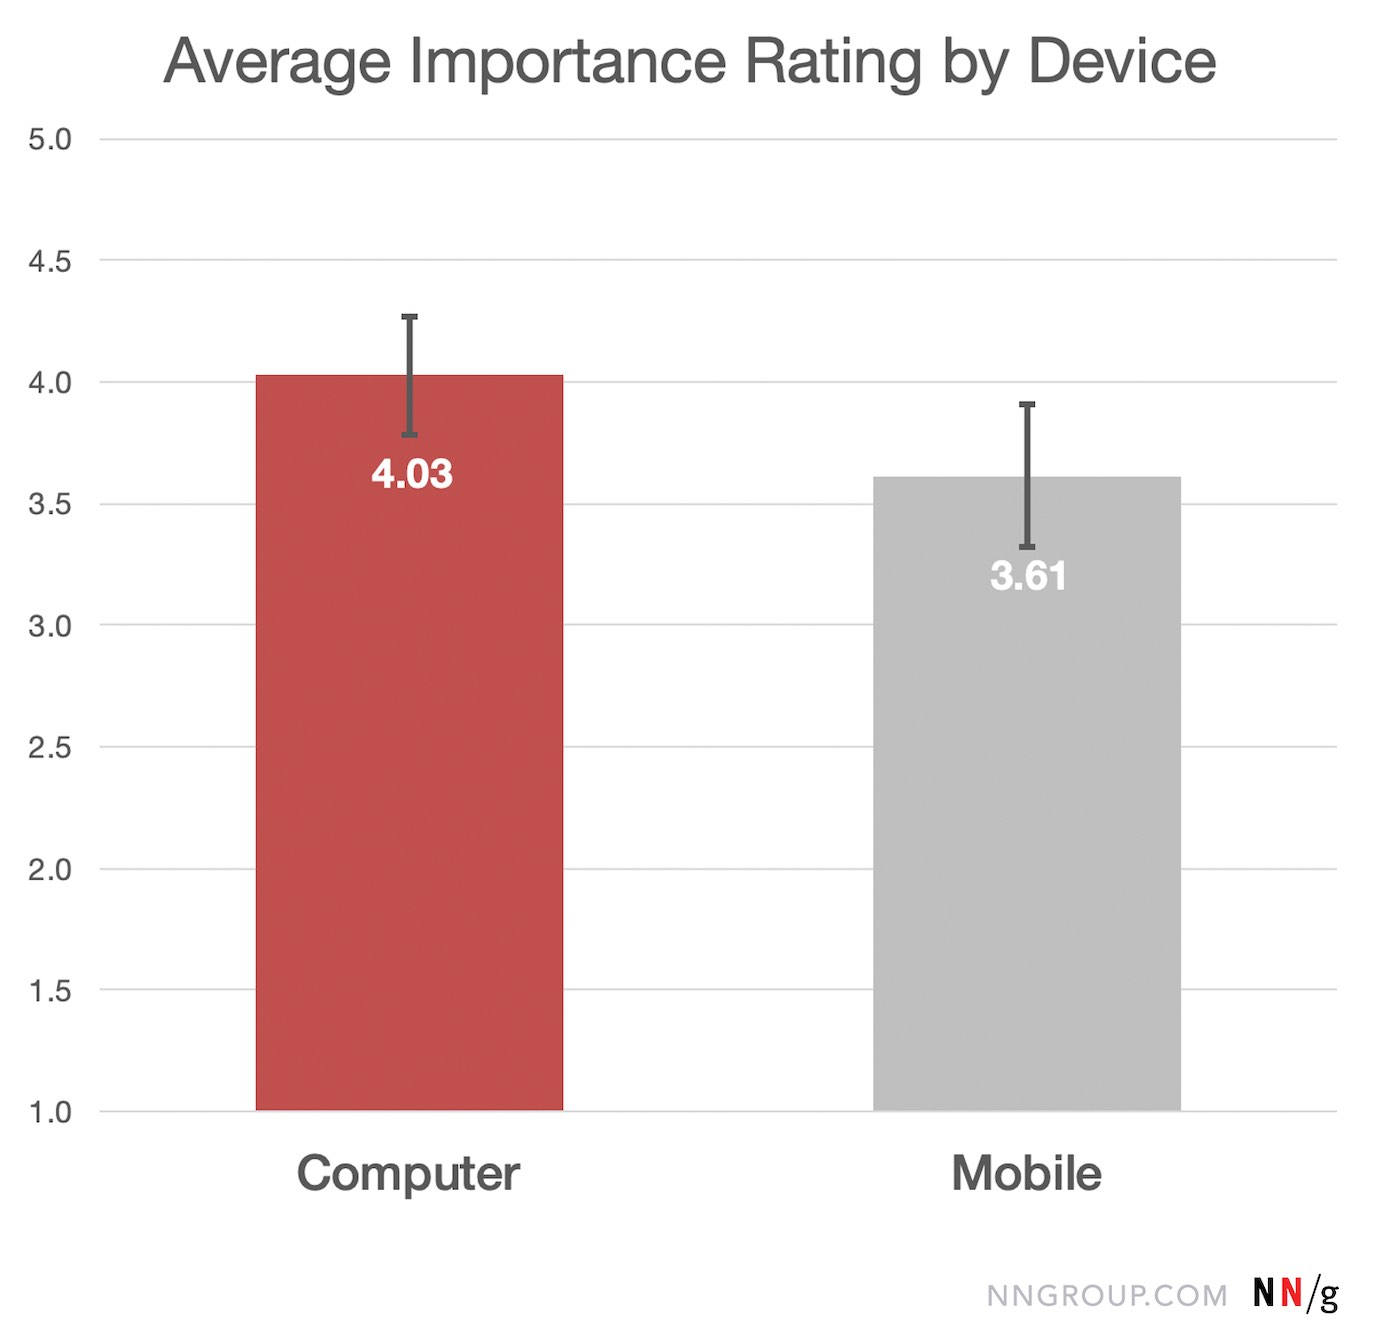 Large Devices Preferred for Important Tasks